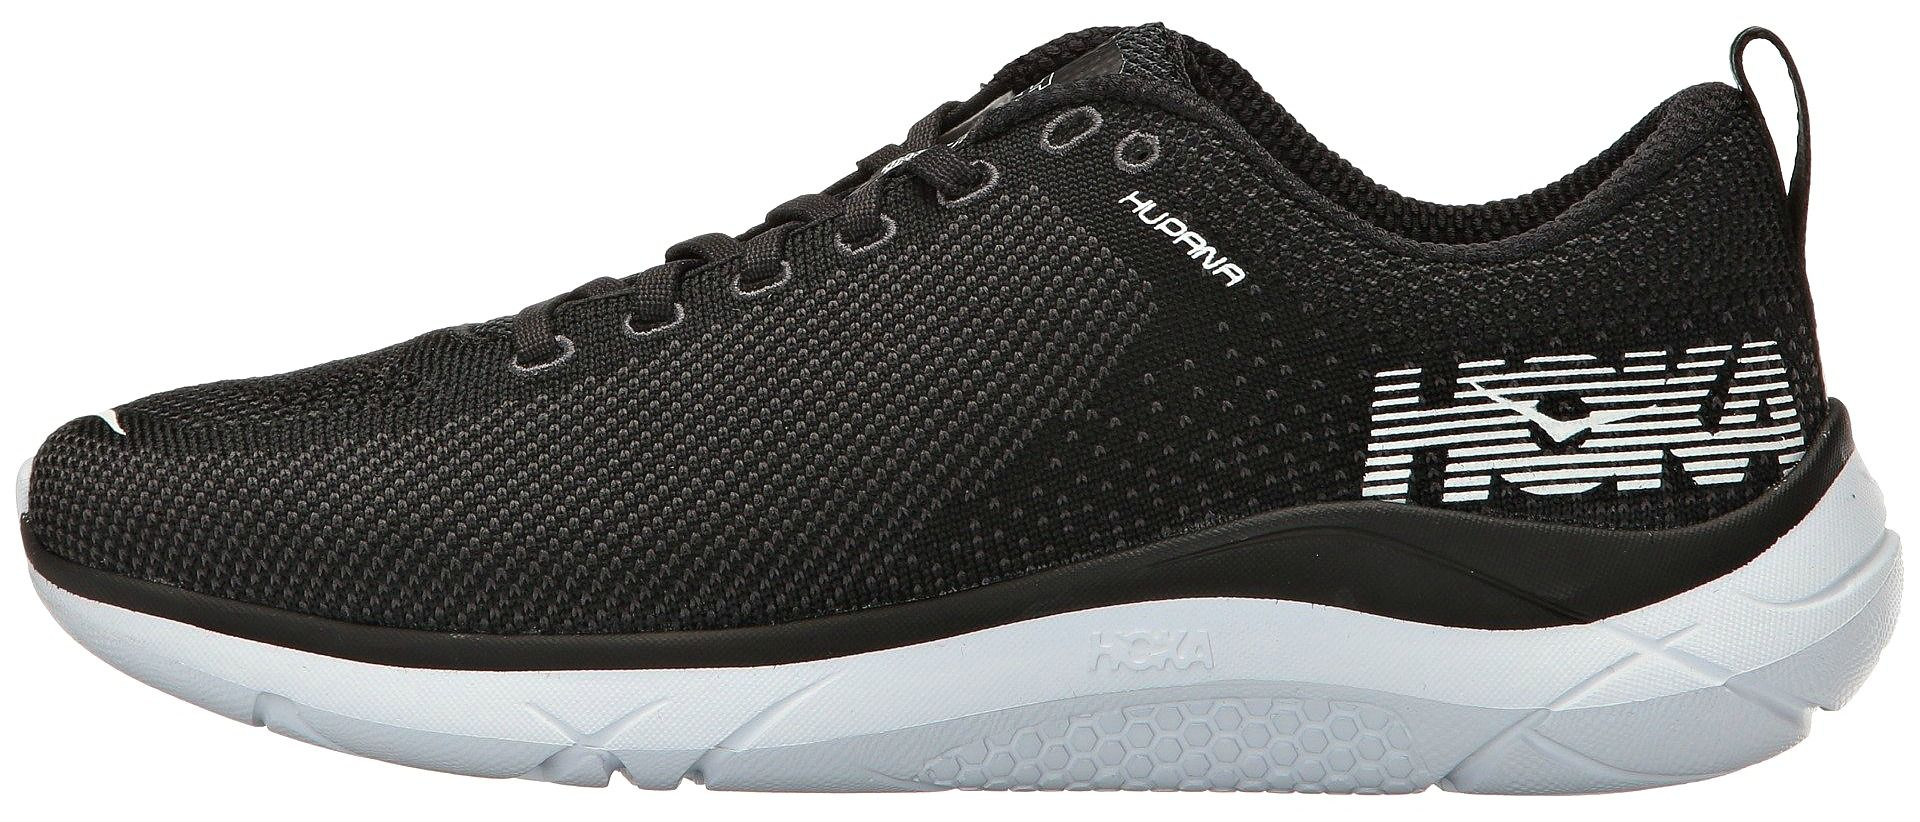 Best Tennis Shoes for Travel (2018